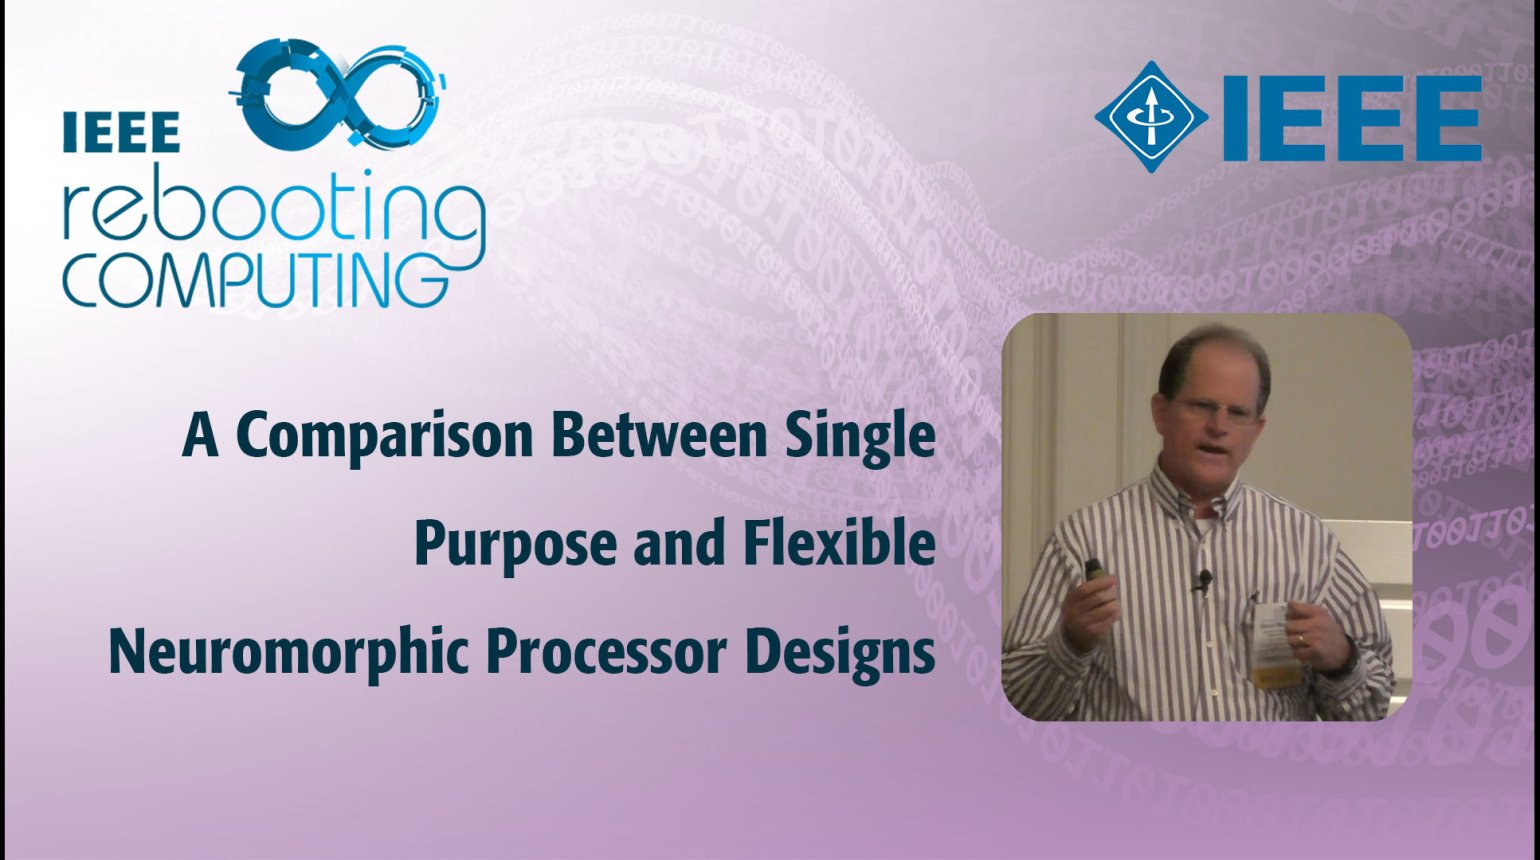 A Comparison Between Single Purpose and Flexible Neuromorphic Processor Designs: IEEE Rebooting Computing 2017